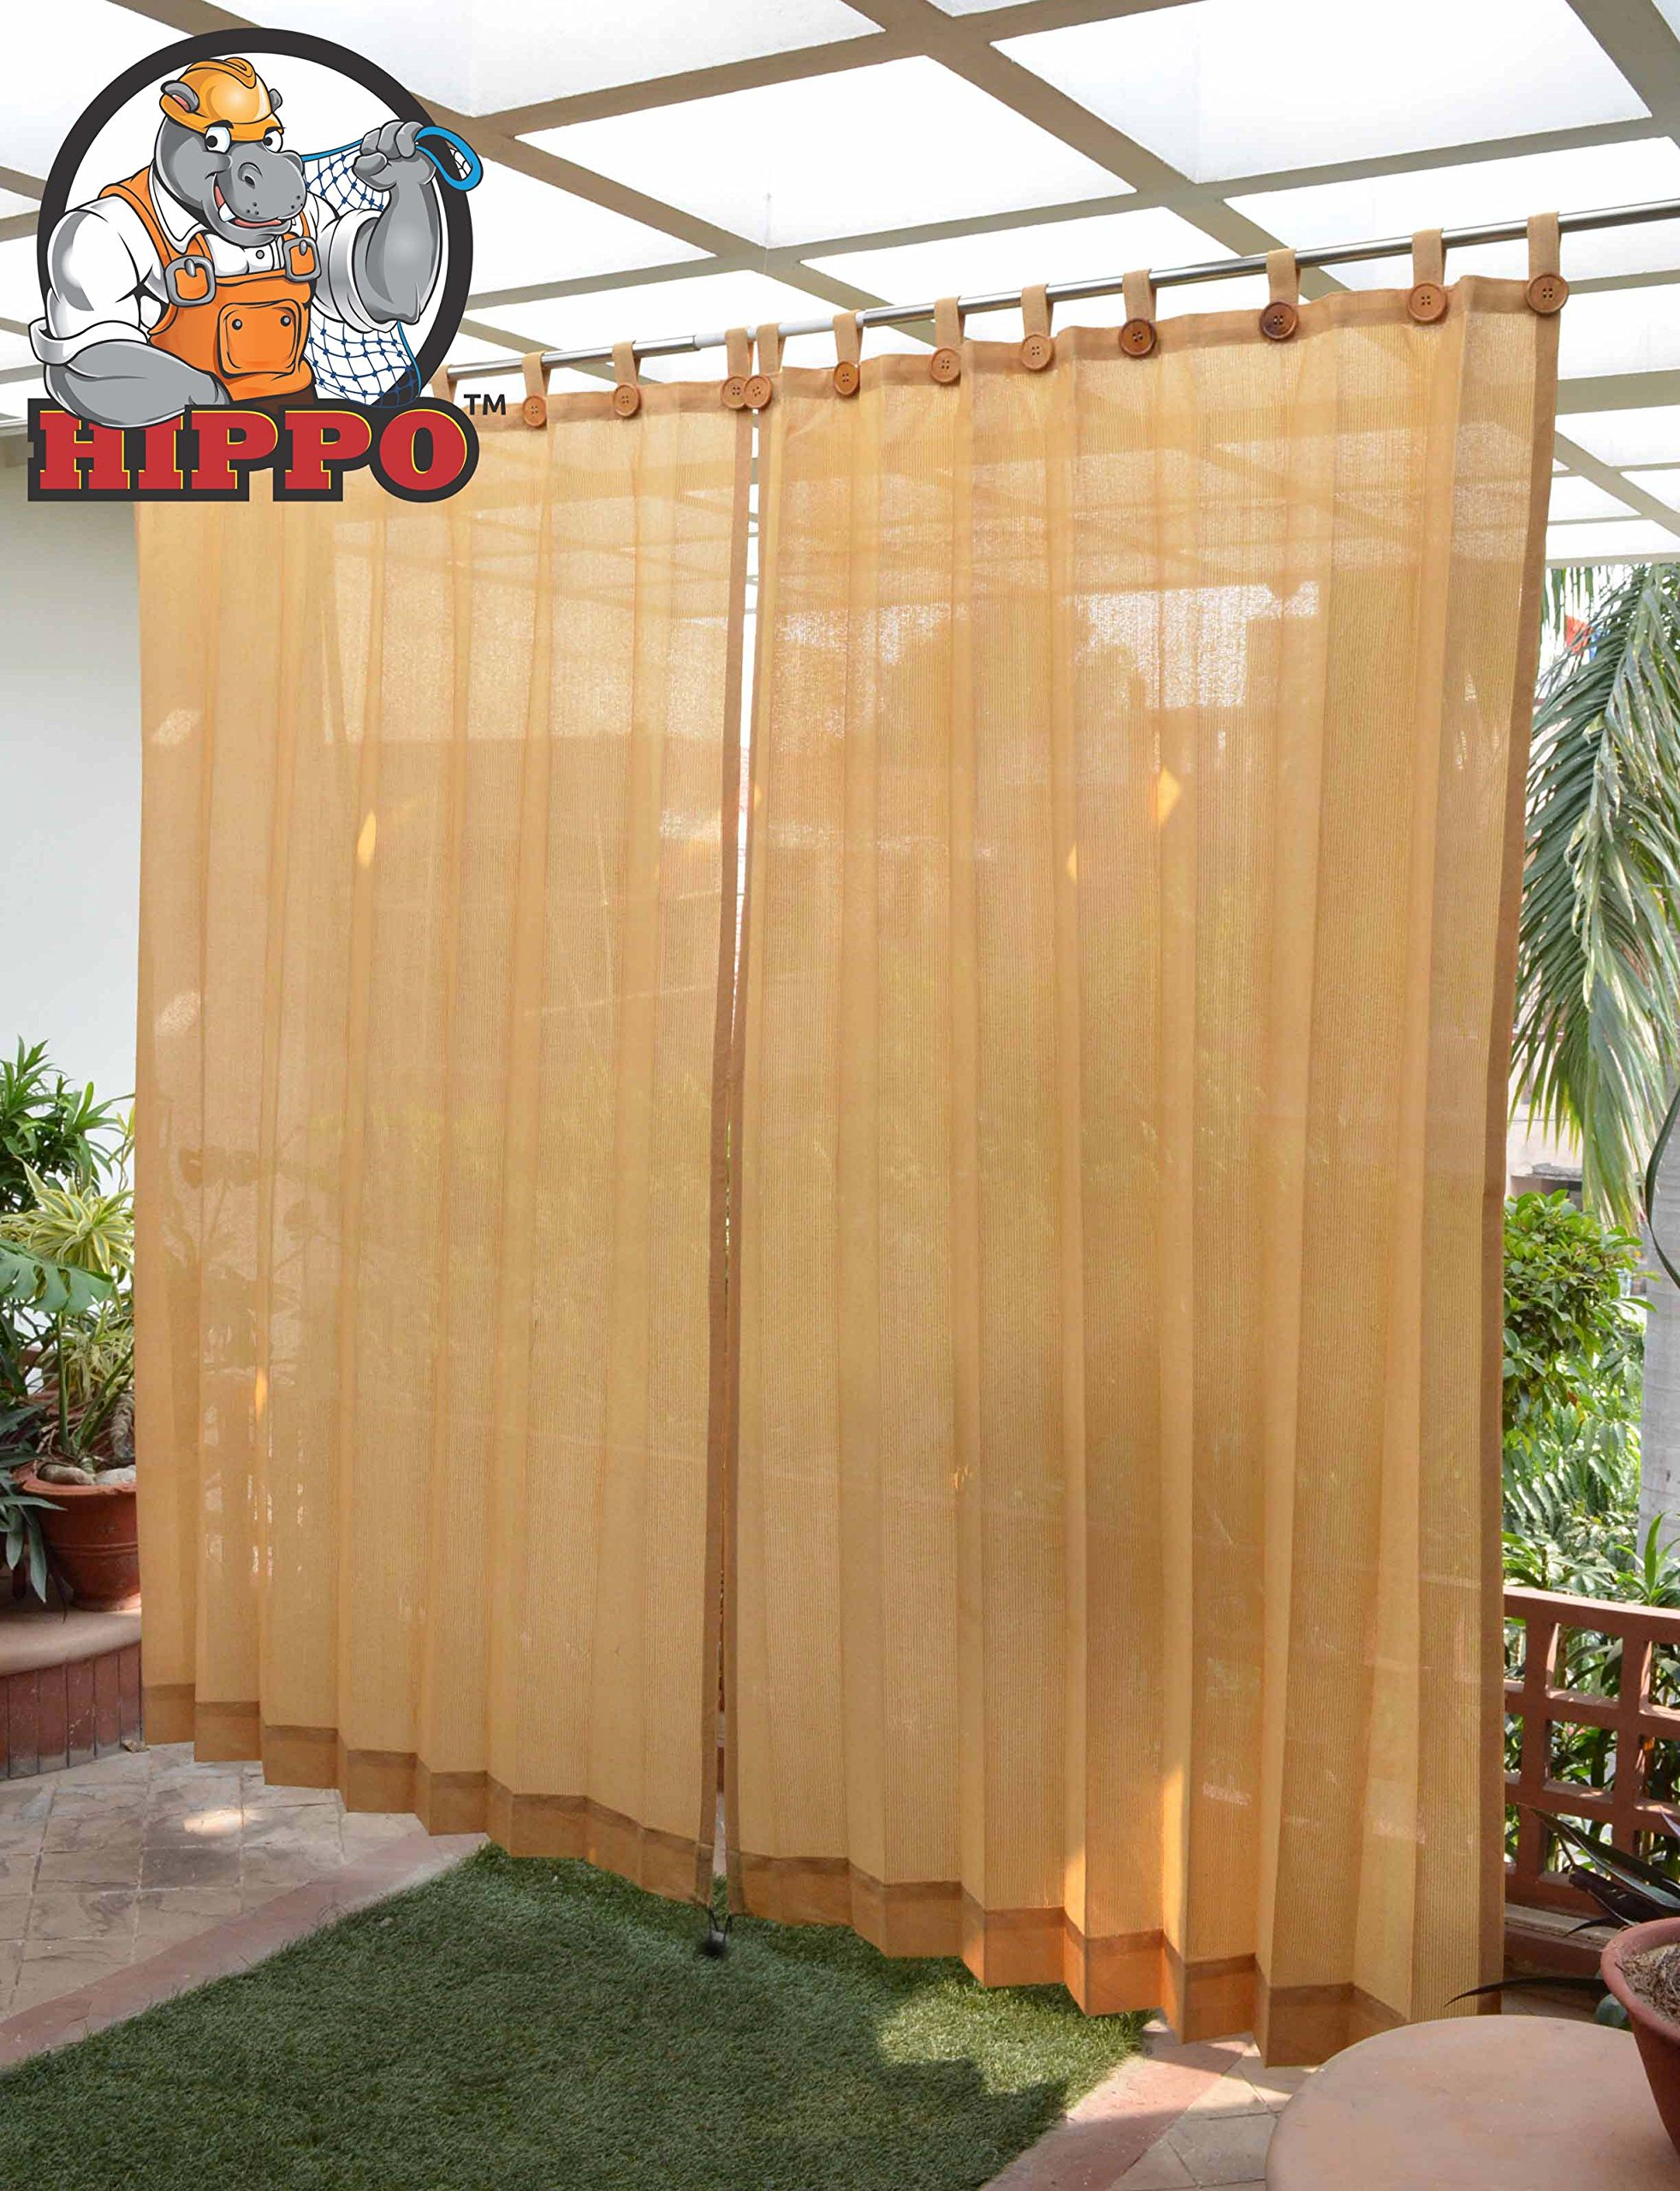 HIPPO Outdoor Loop Curtains - (80-85%) Sun Blockage - Medium Duty - Beige Colour - Full Size (2 Nos. x 4.0 Ft W x 7.5 Ft L product image